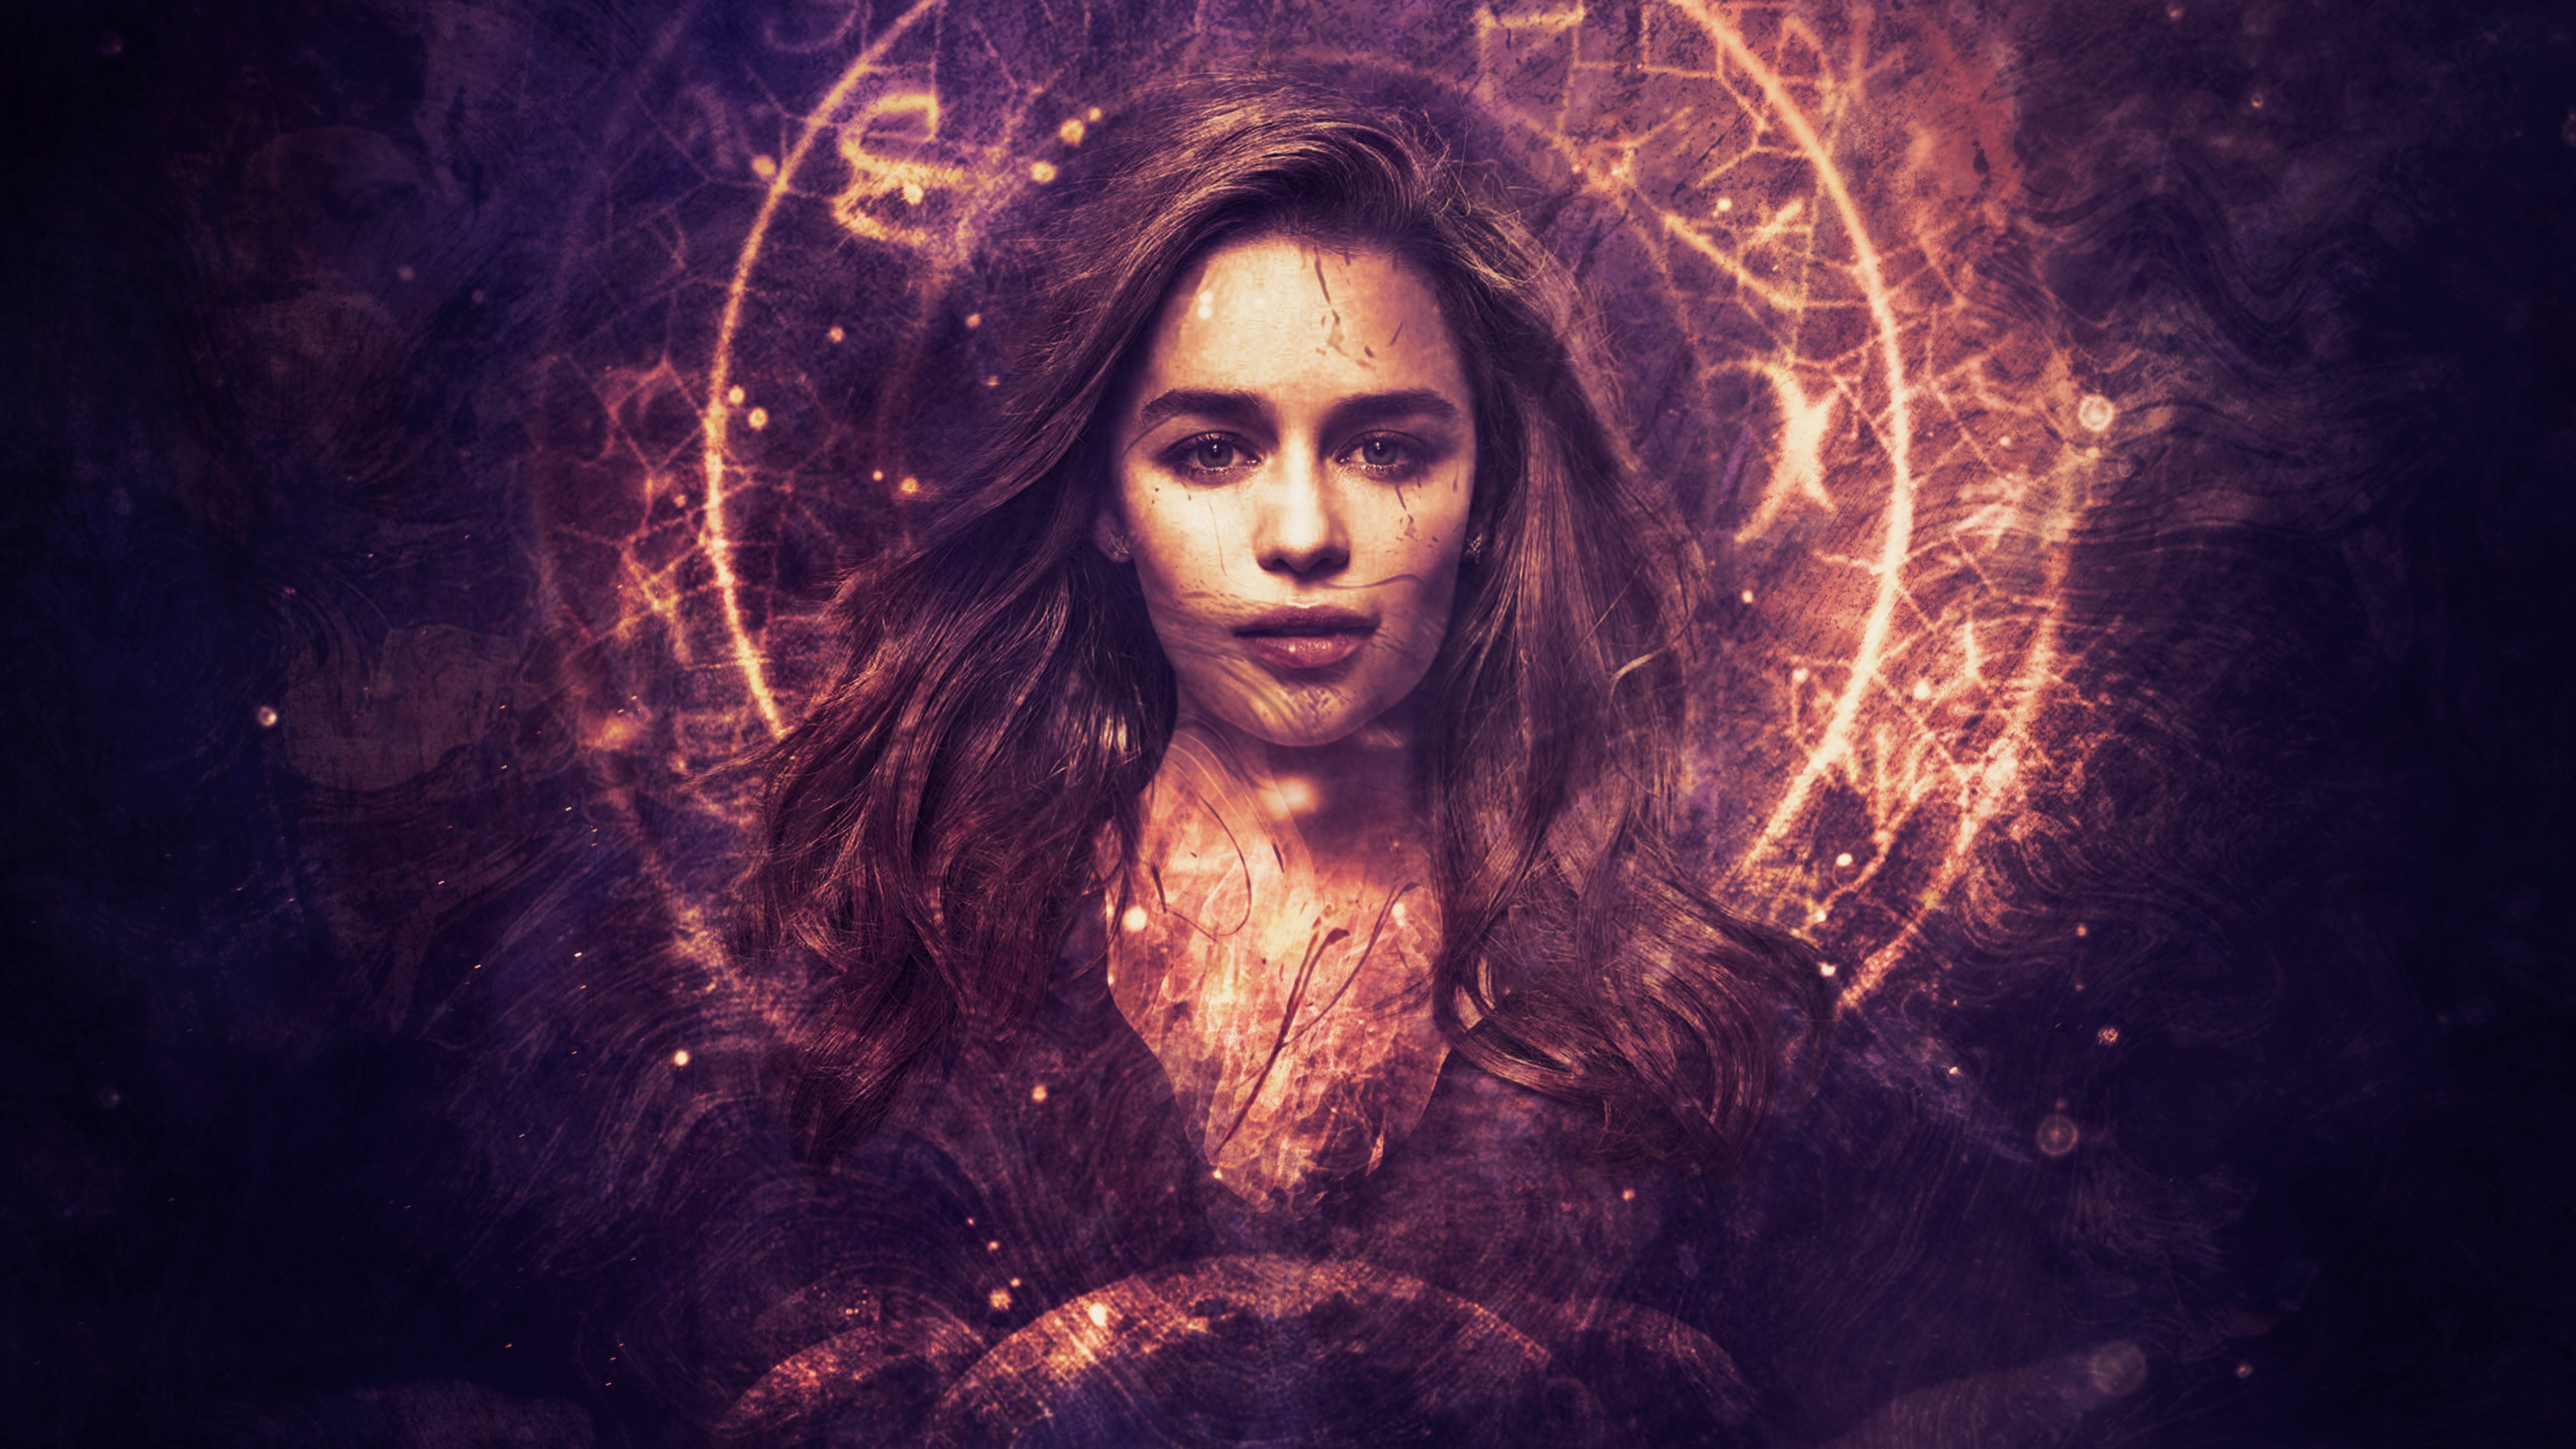 Emilia Clarke Photo Manipulation 4k Wallpaper Hd